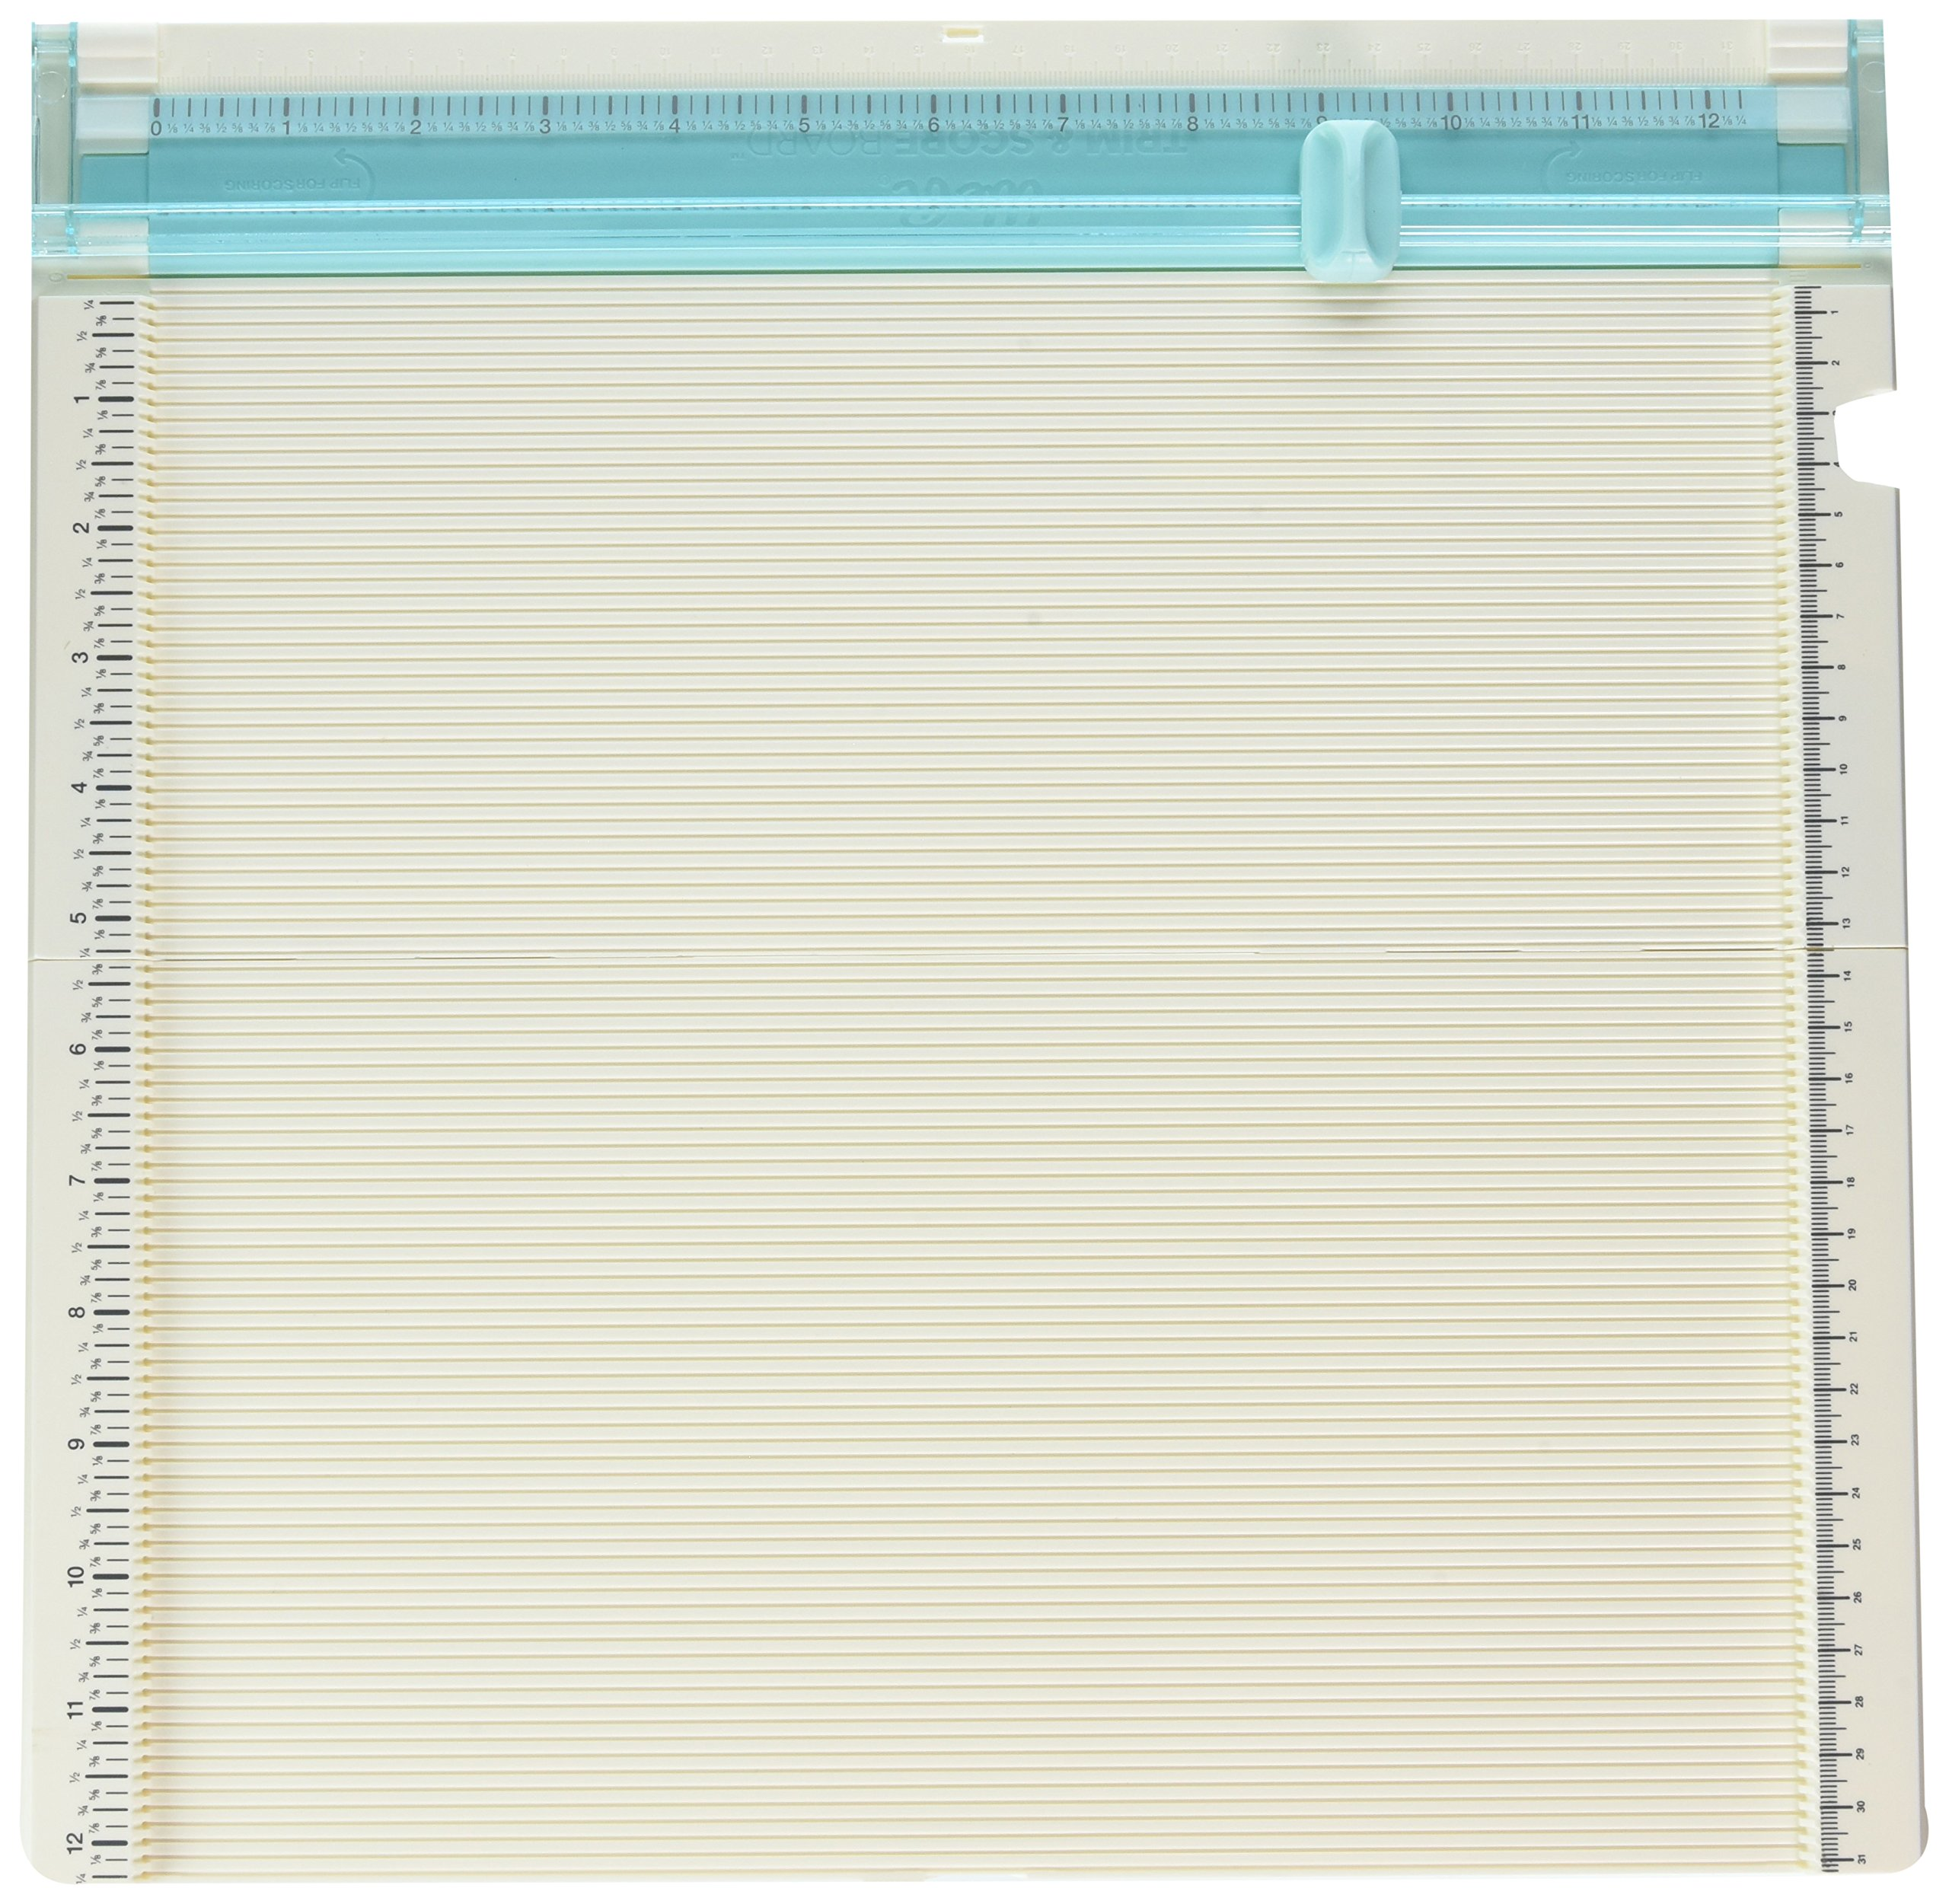 We R Memory Keepers 0633356600718 Trimmer Trimmer & Mat-Trim and Score Board by We R Memory Keepers